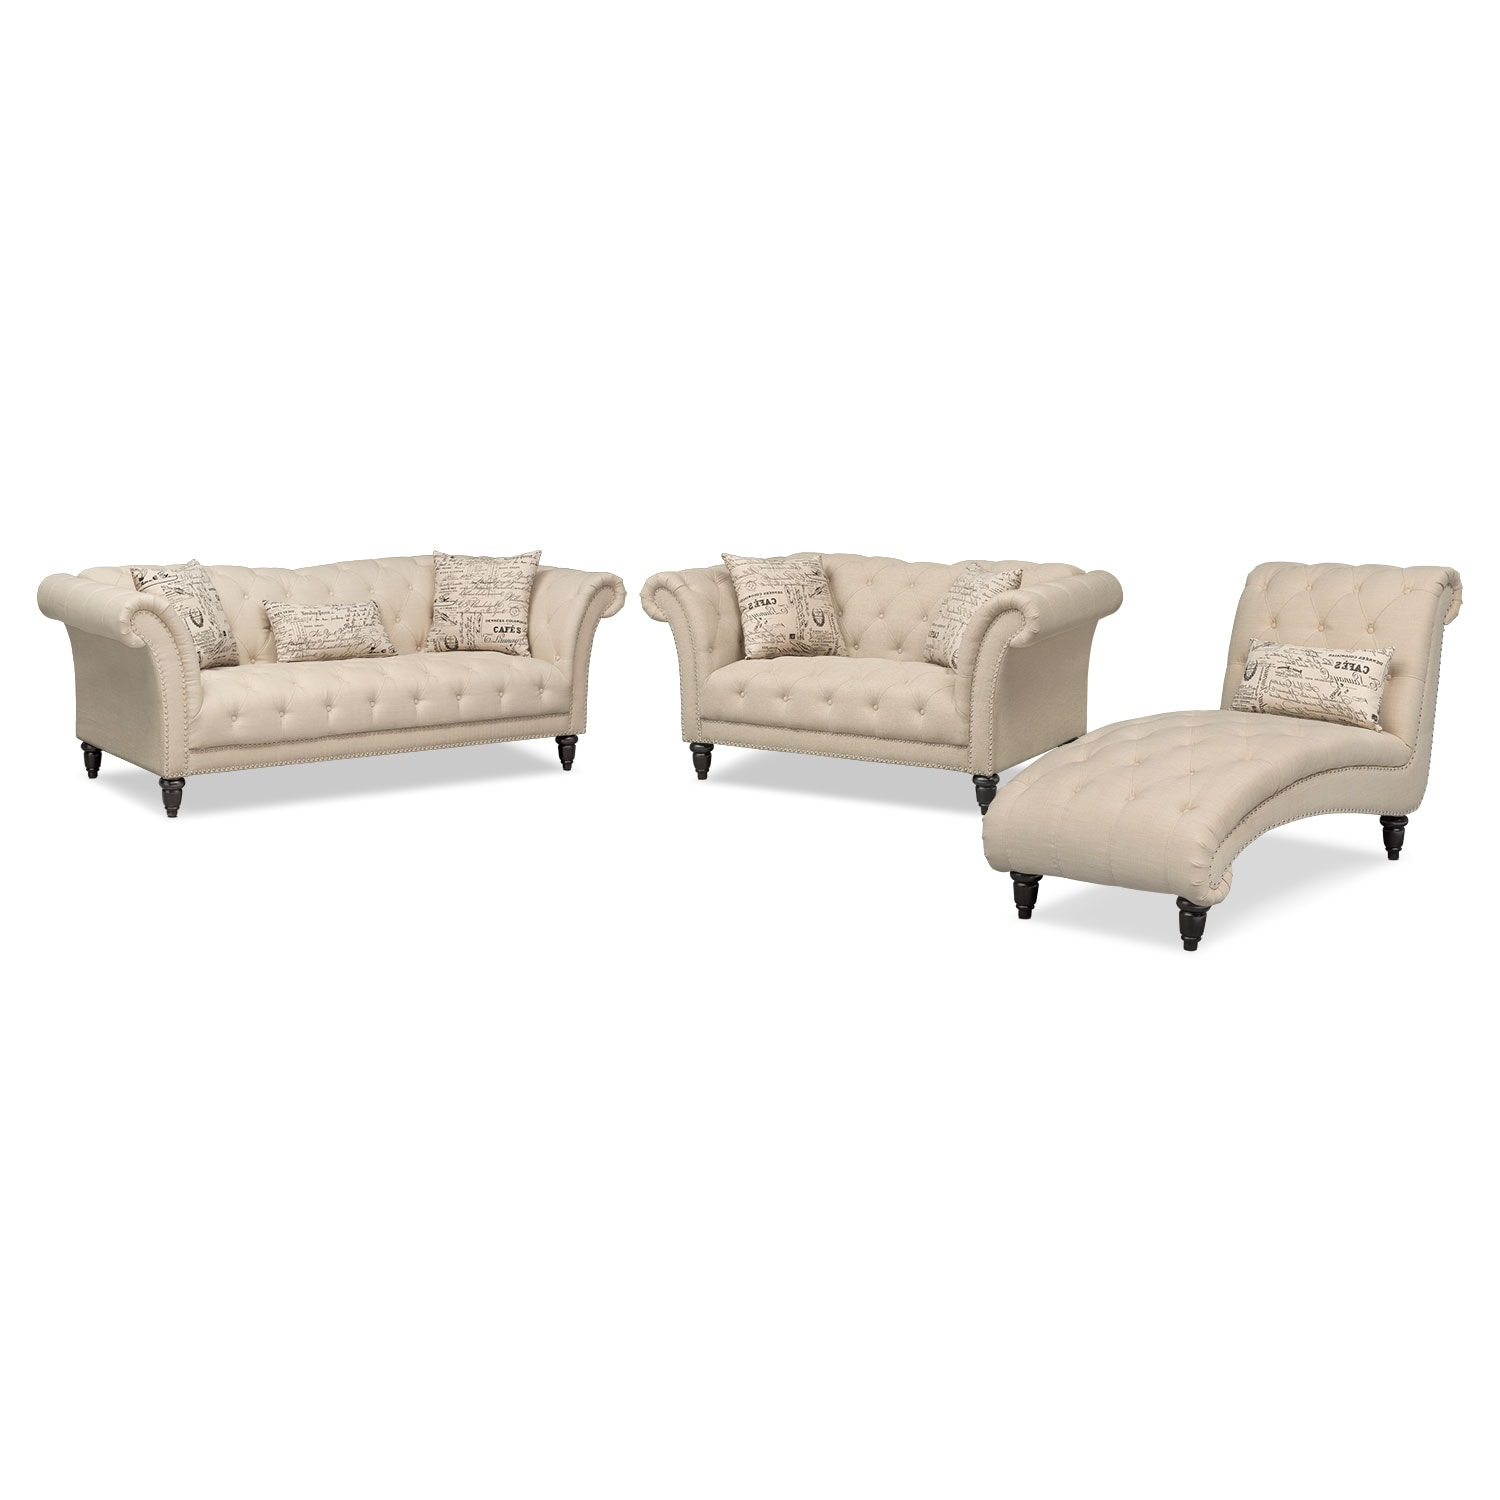 Living Room Furniture - Marisol Sofa, Loveseat and Chaise Set - Beige